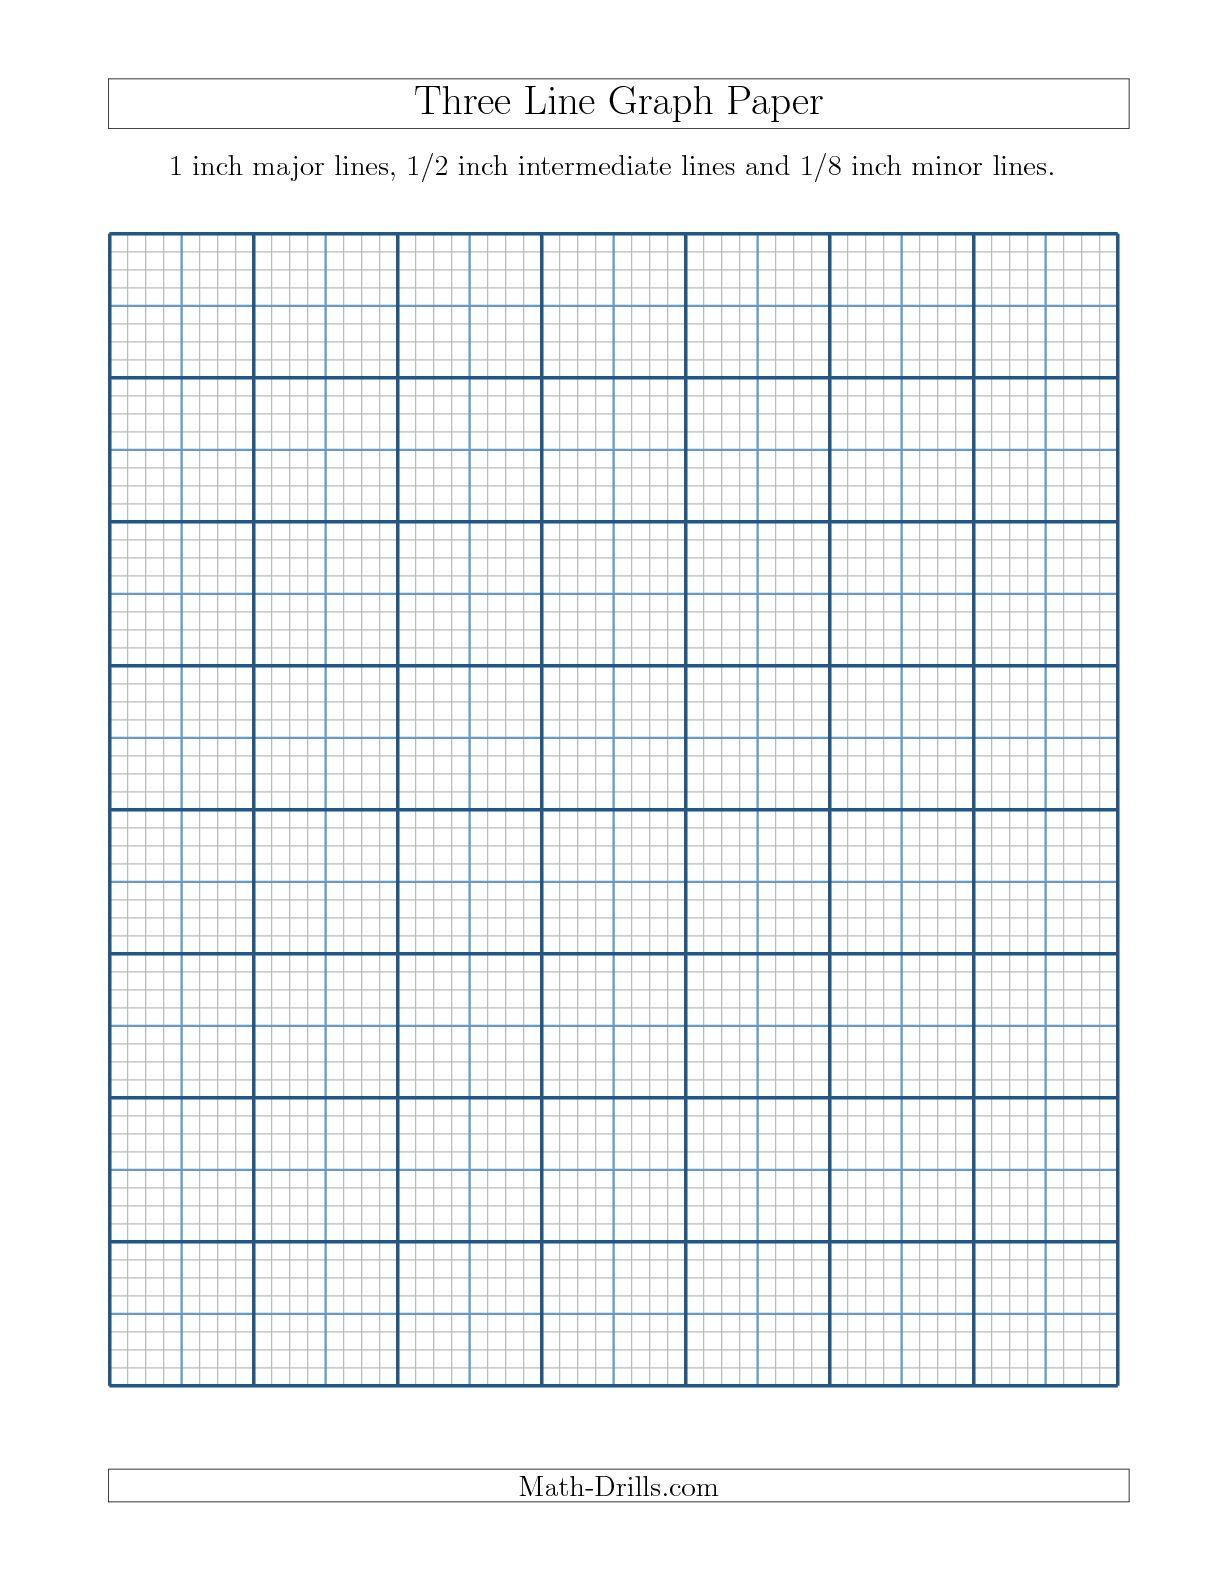 The Three Line Graph Paper With 1 Inch Major Lines, 1/2 Inch Intermediate